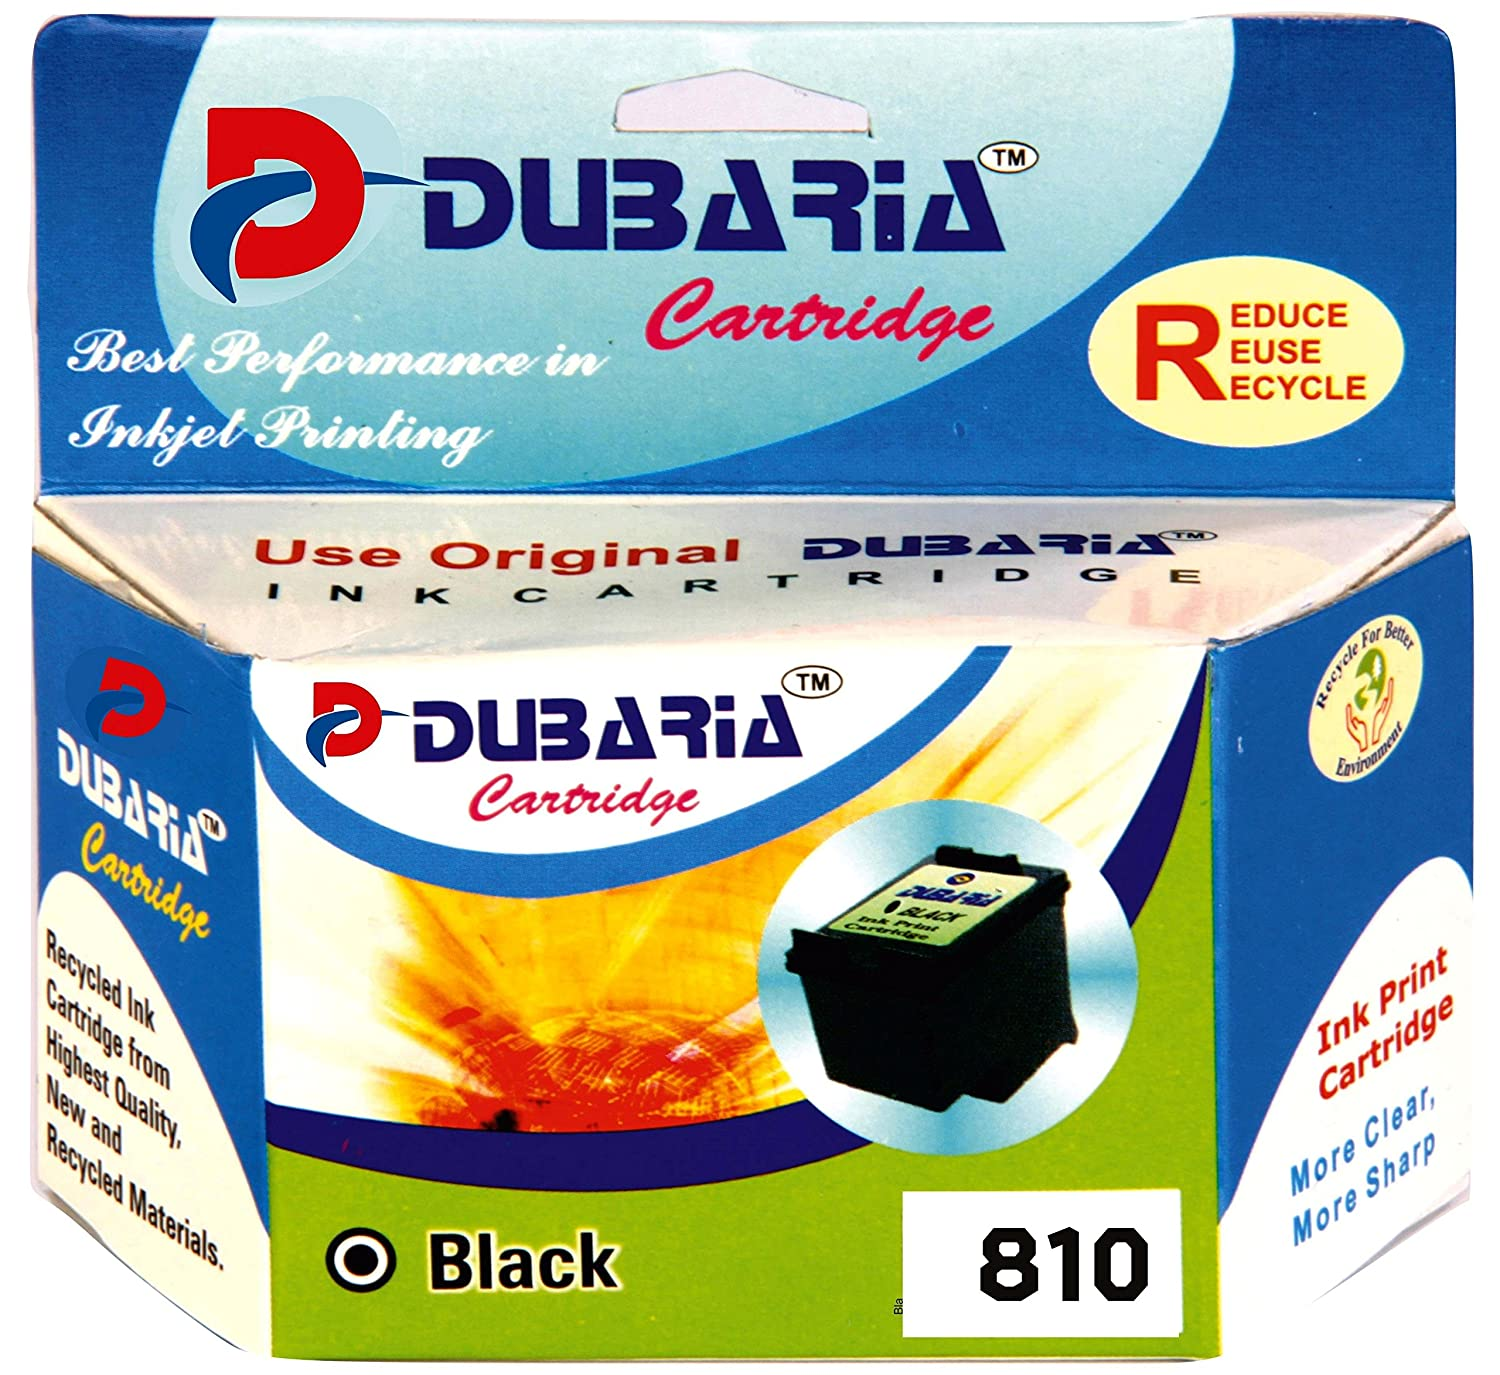 Buy Dubaria 810 Toner Cartridges For Canon Black Online Ready Cartridge Ori At Low Prices In India Reviews Ratings